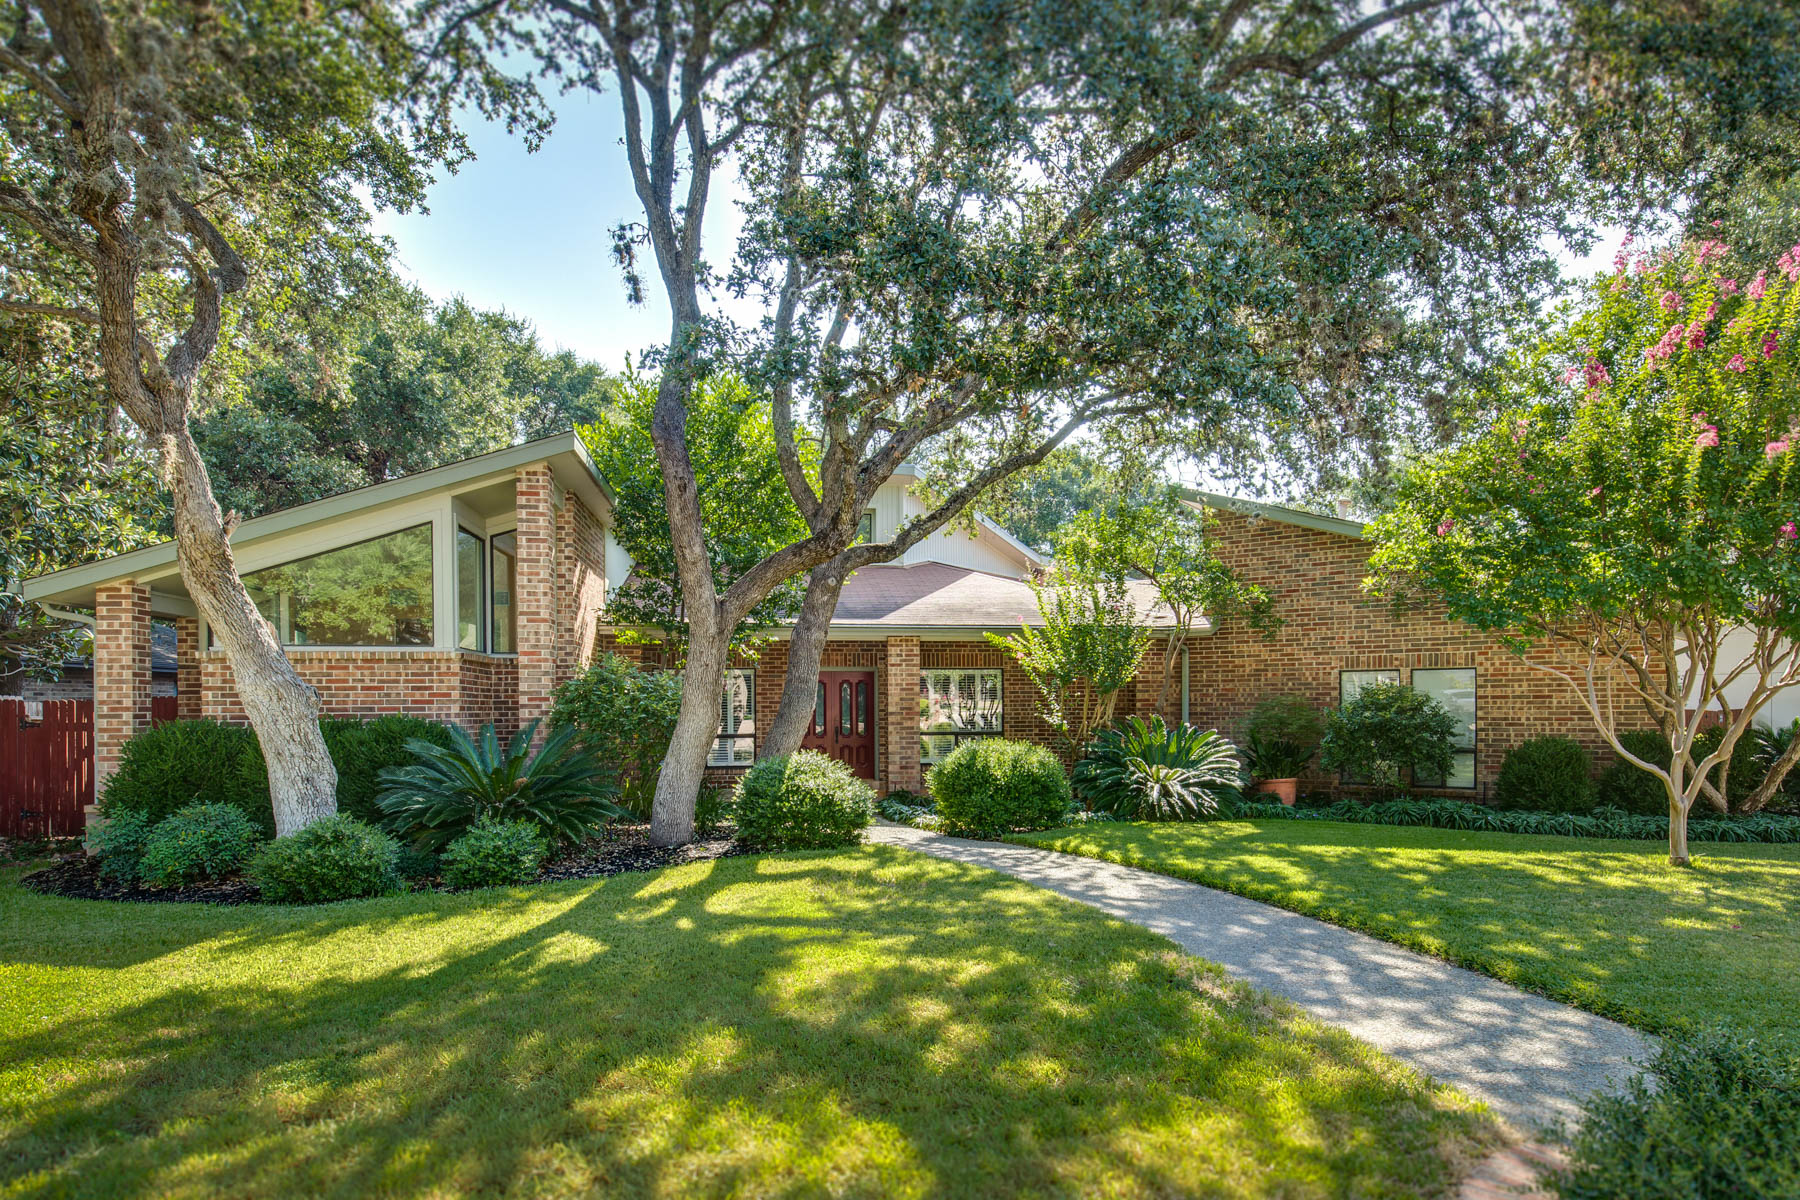 Single Family Home for Sale at Spectacular Contemporary Home in Hunters Creek 3615 Hunters Cliff San Antonio, Texas 78230 United States